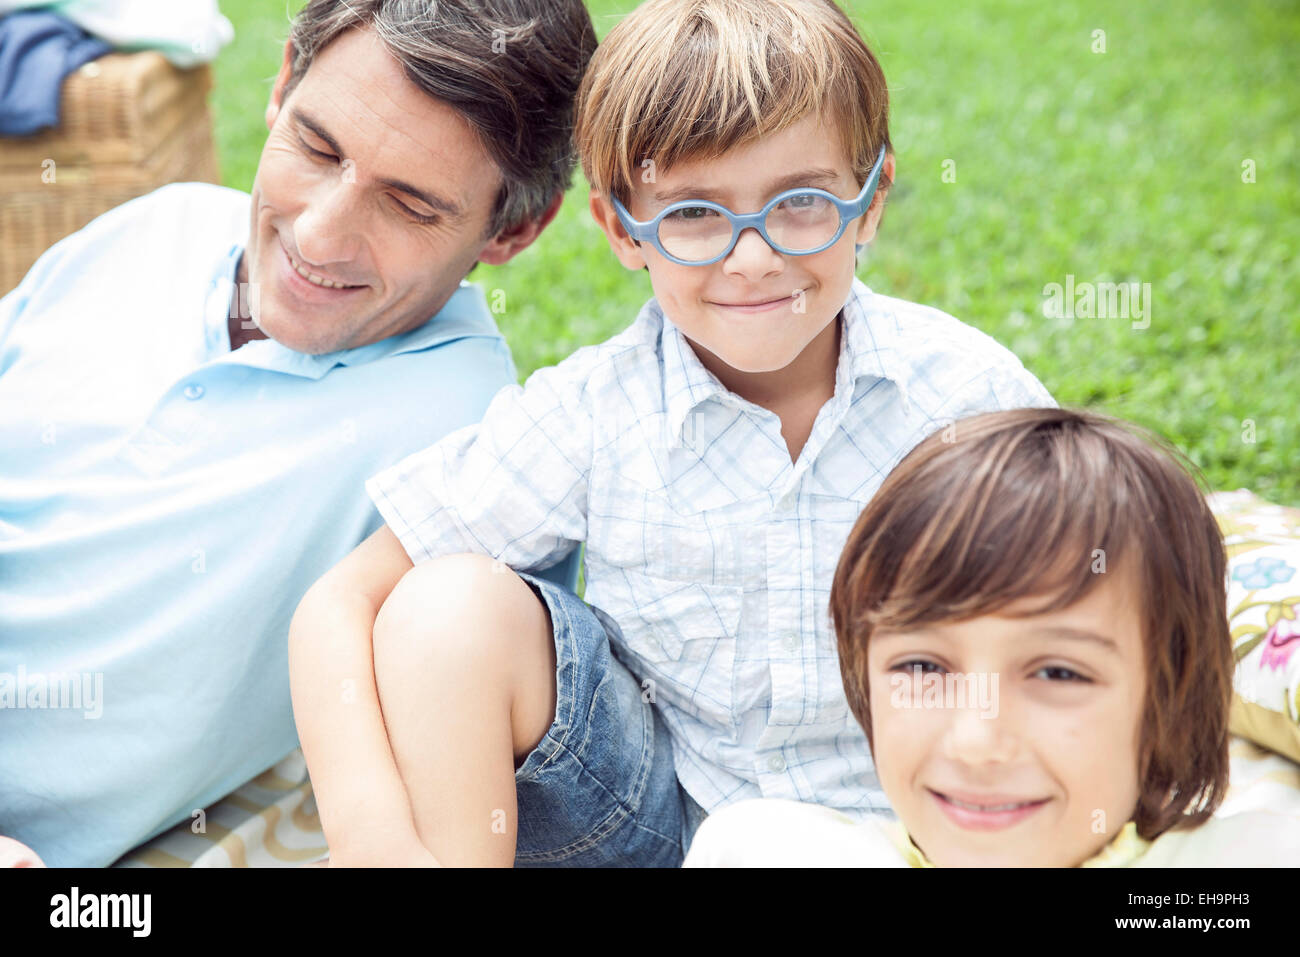 Boys spending time with father outdoors - Stock Image